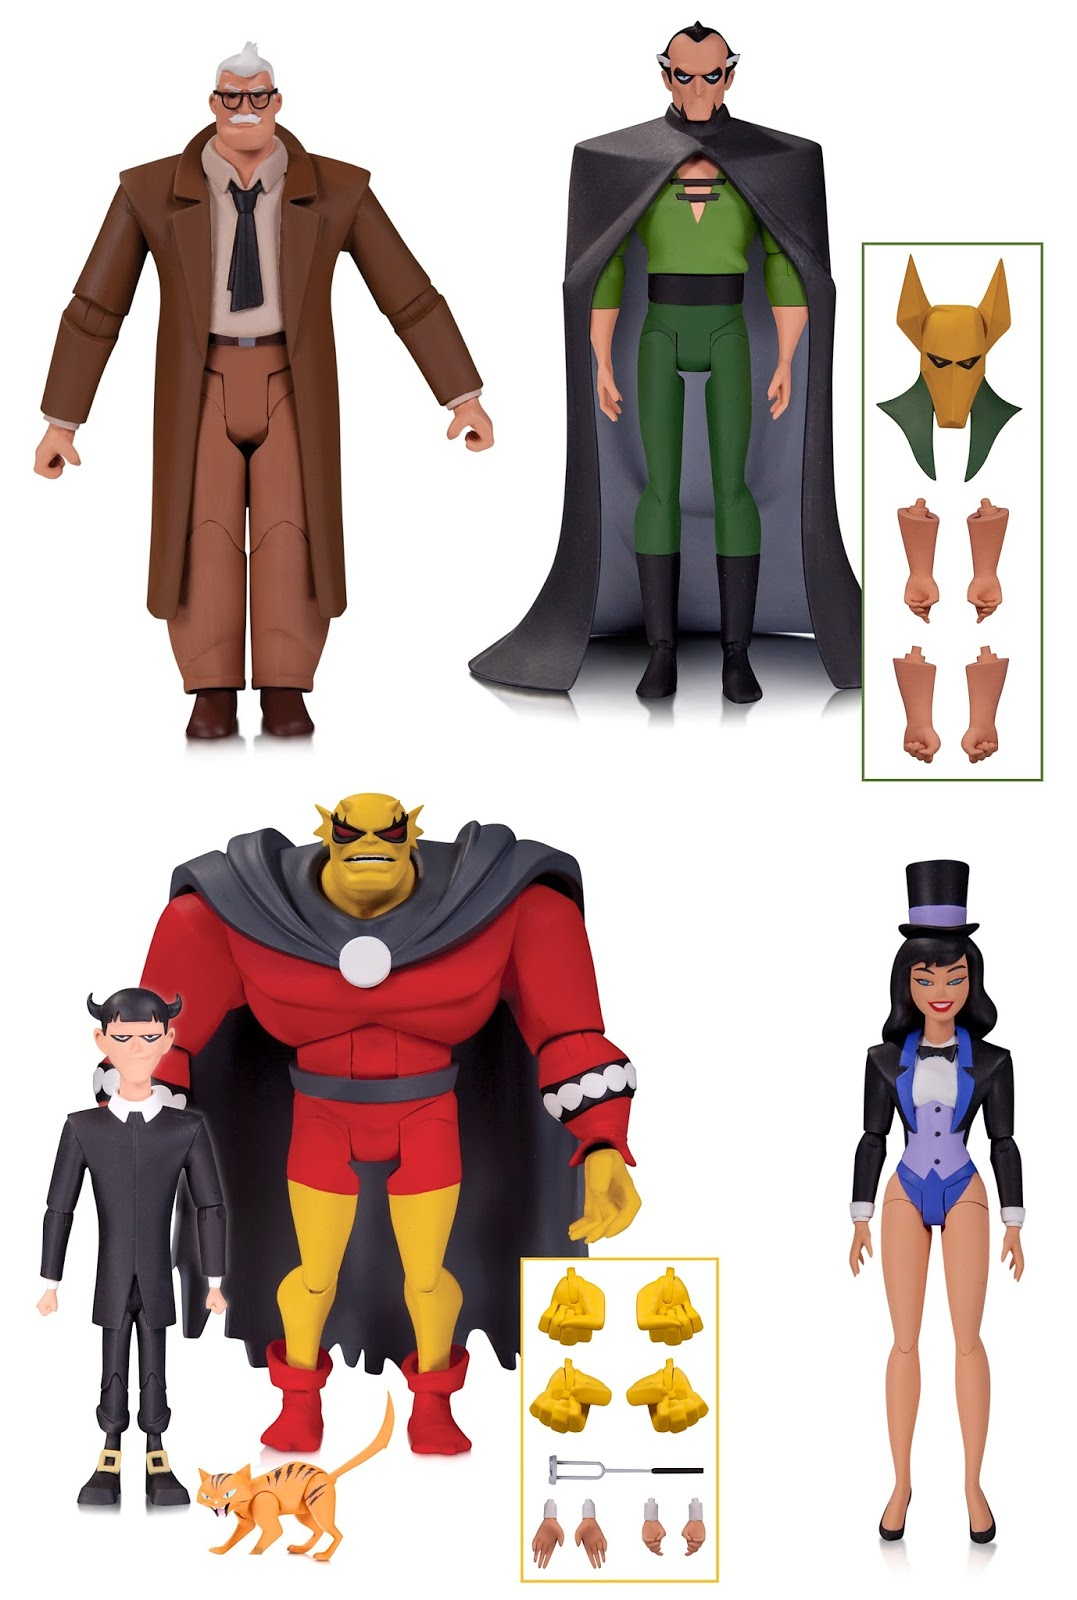 DC Comics The New Batman Adventures Etrigan /& Klarion Witch Boy Figures CHOP